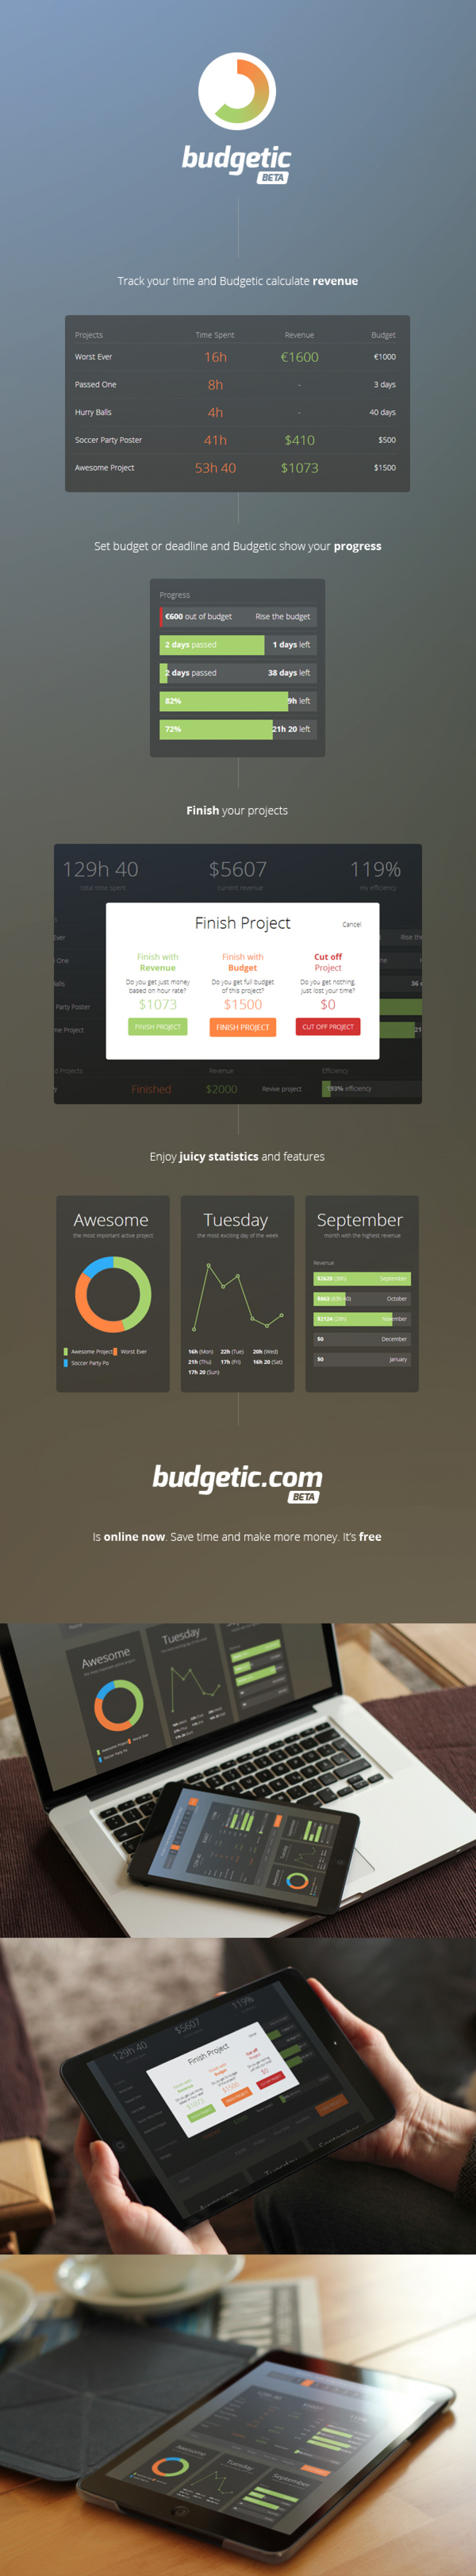 Budgetic.com is here to help Infographic